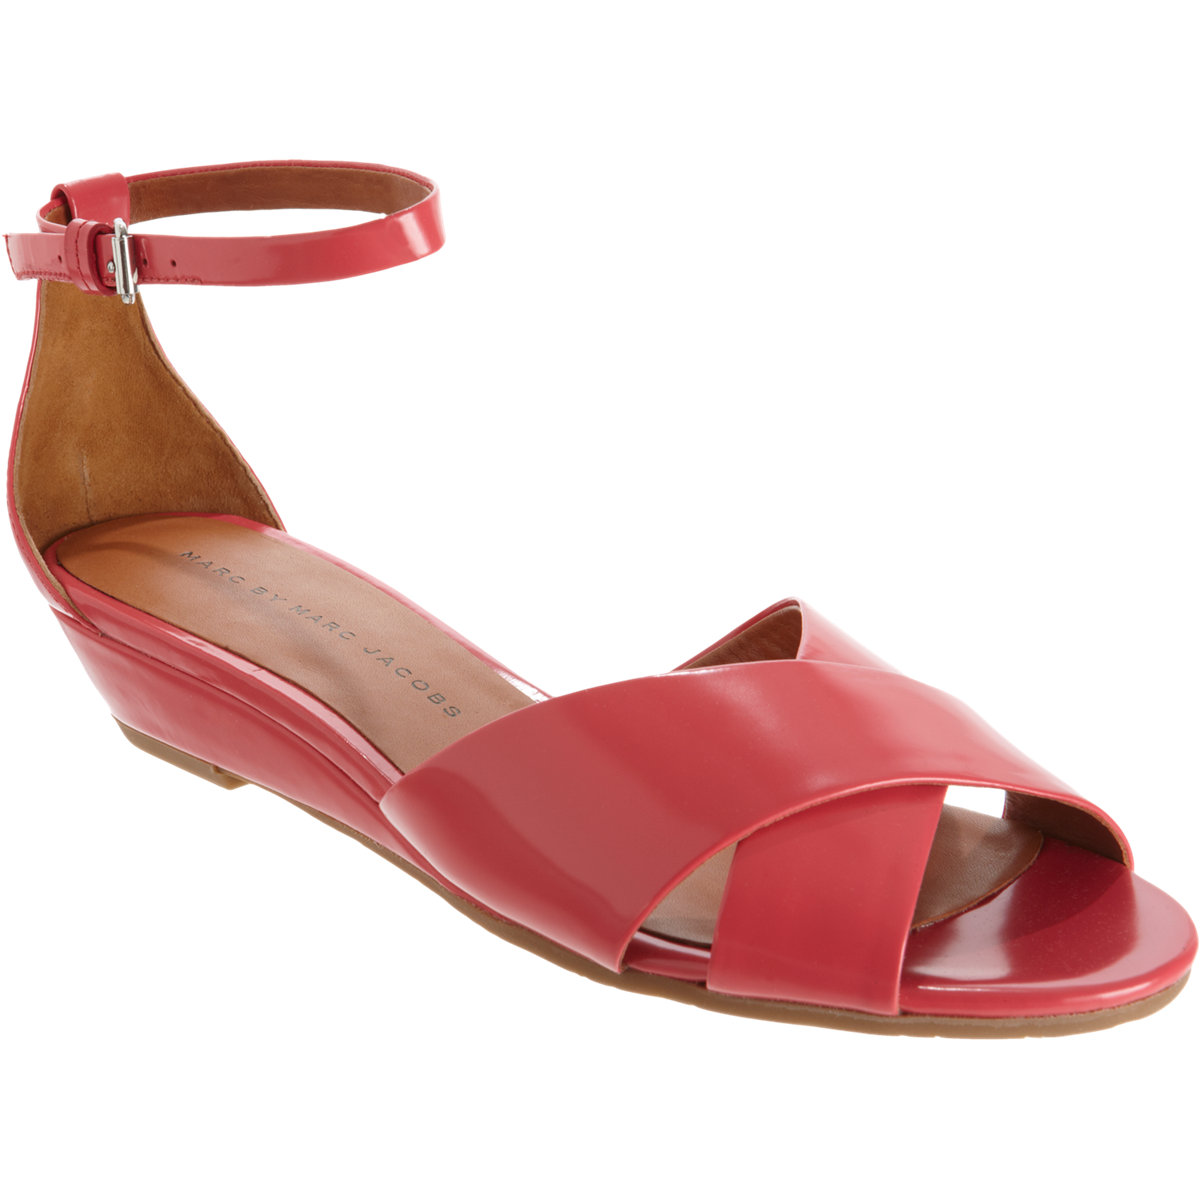 Marc By Marc Jacobs Crisscross Wedge Sandal In Red Coral